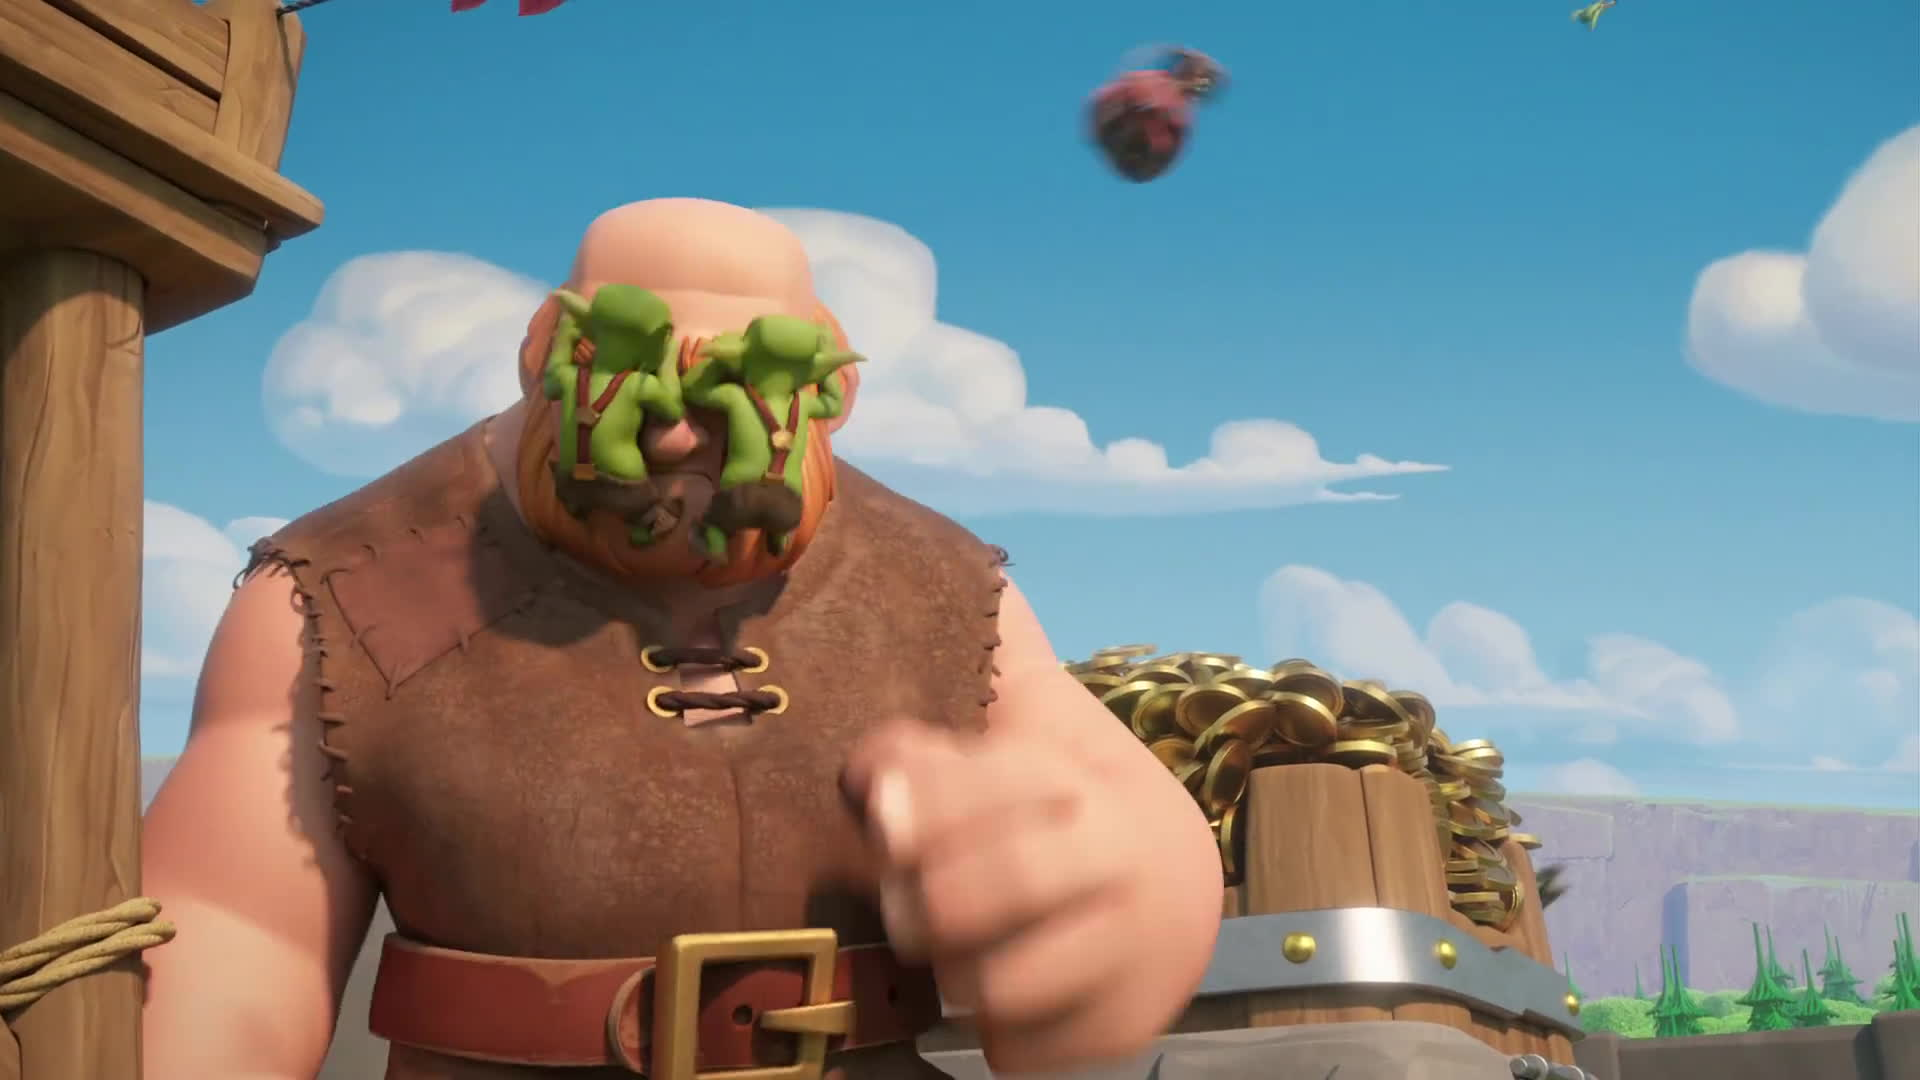 builder, clash of clans, coc, gaming, Clash of Clans: Come Back Builder! GIFs